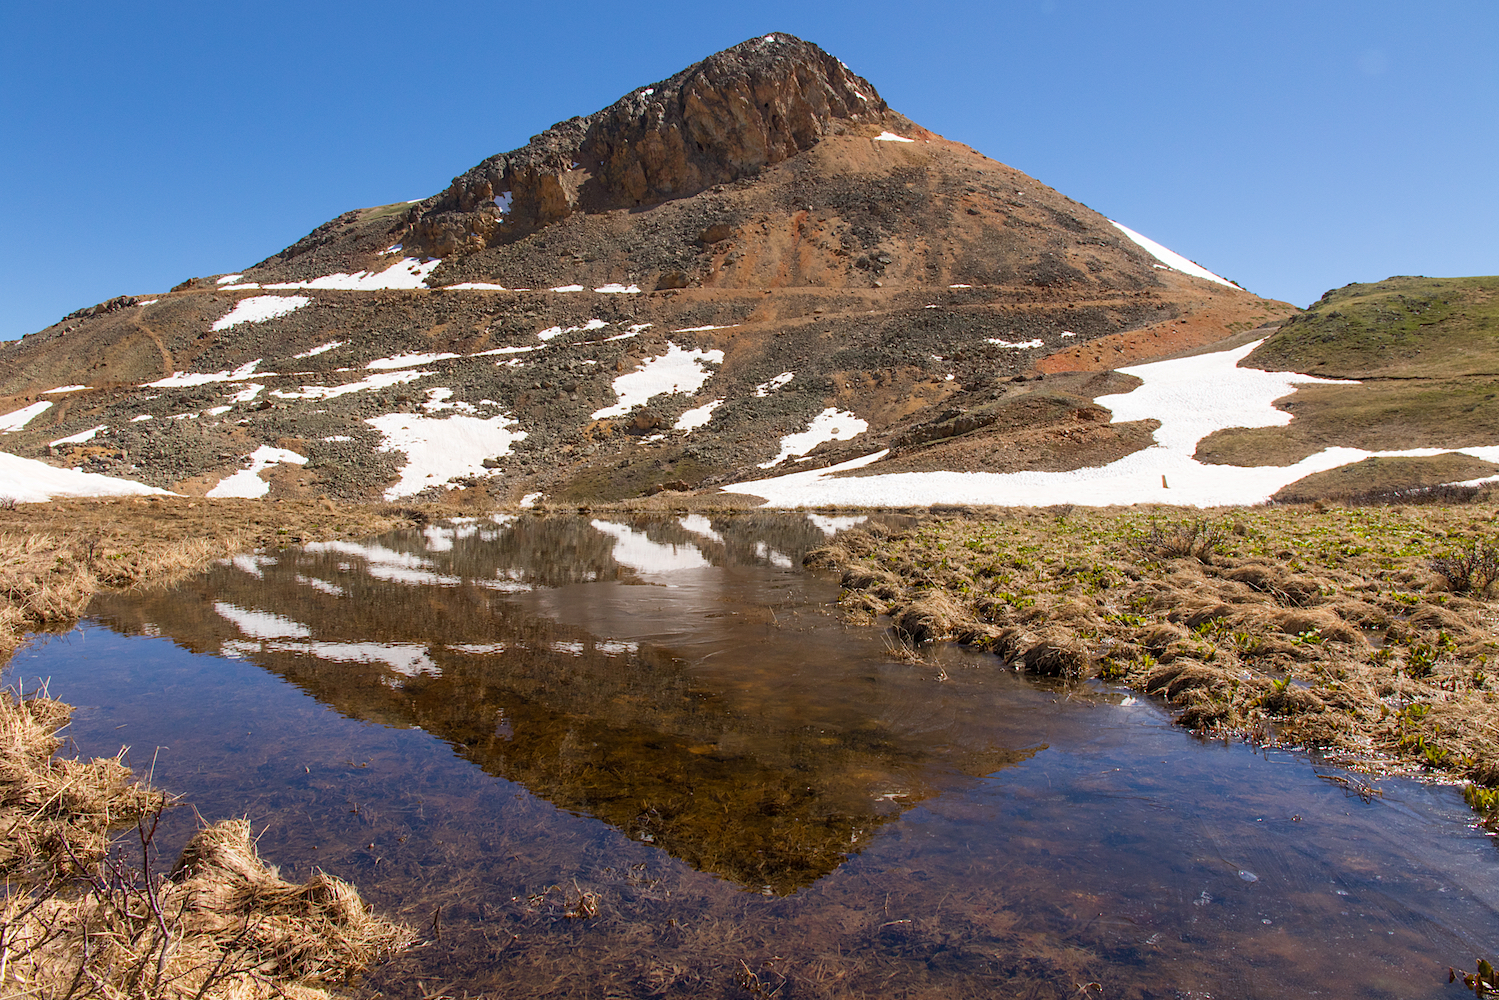 Red Mountain Reflection, Image # 3809